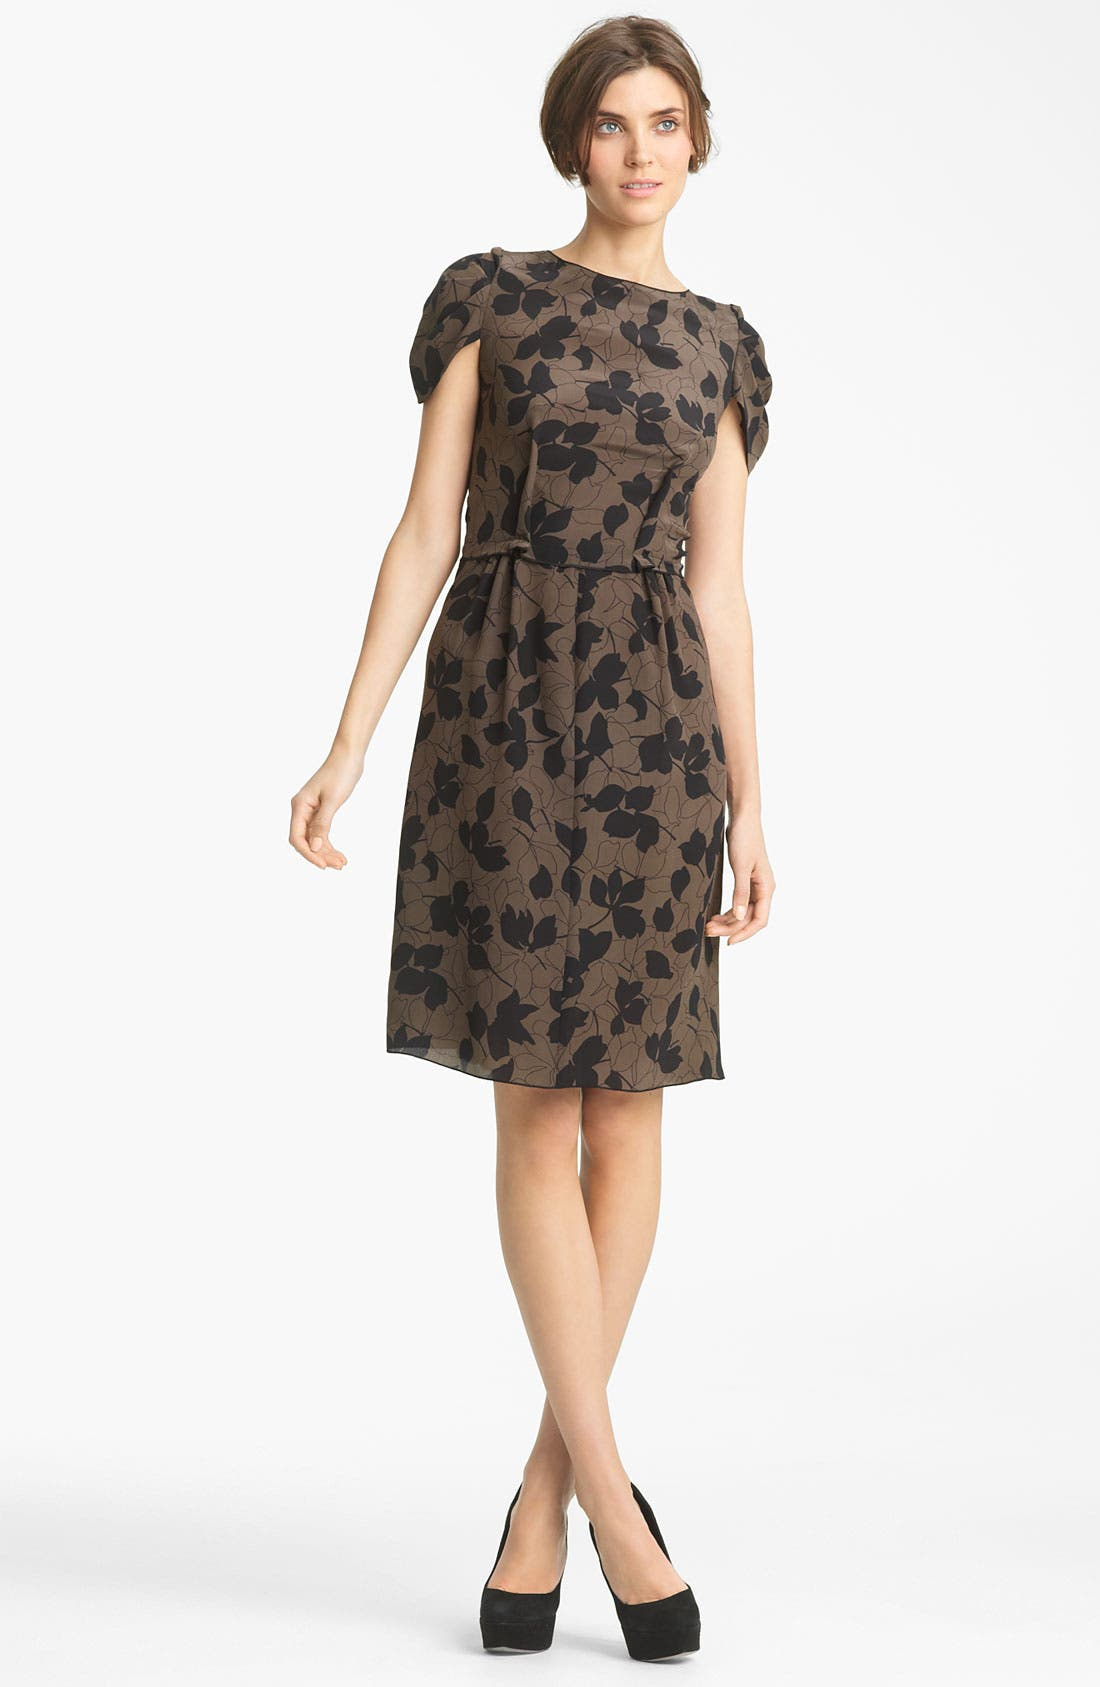 Alternate Image 1 Selected - Nina Ricci 'Camo Fleur' Print Silk Crepe Dress